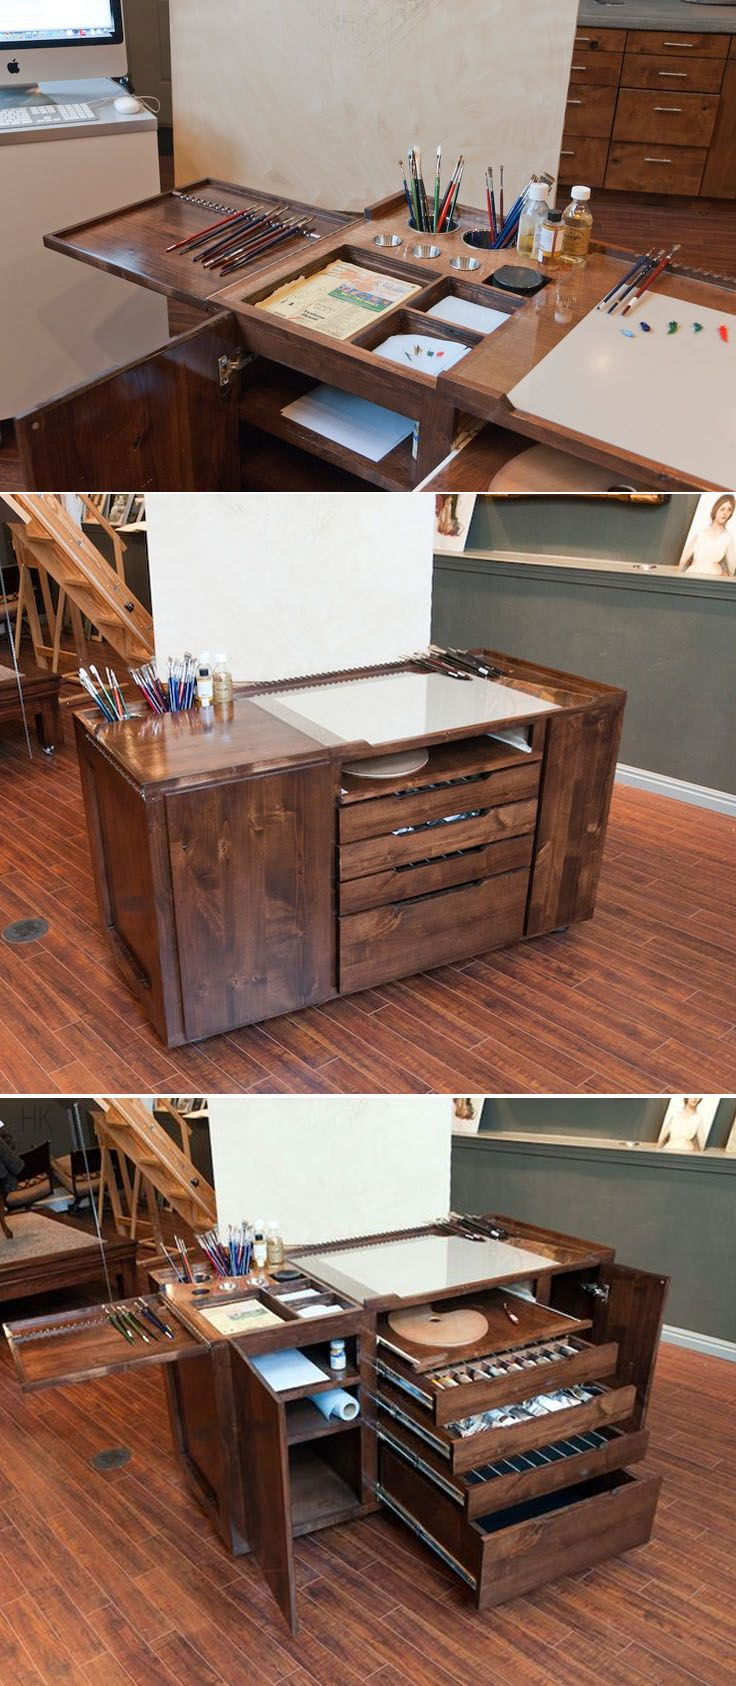 Beautiful Taboret For Painting Art Desk Art Storage Art Studio Organization